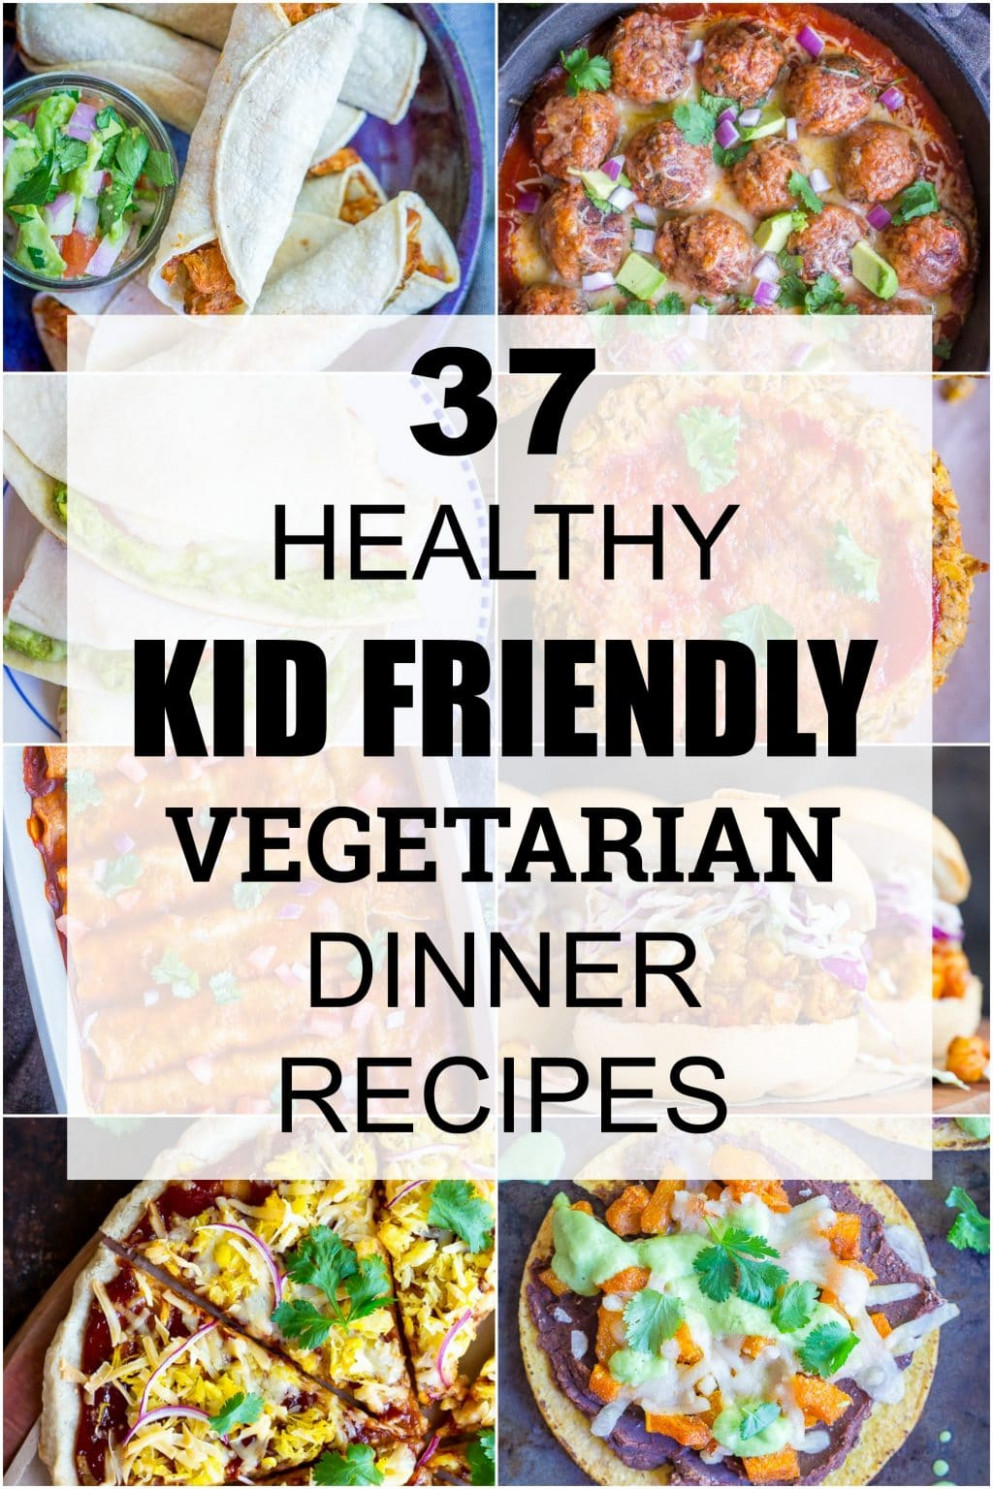 13 Healthy Kid Friendly Vegetarian Dinner Recipes - She ..